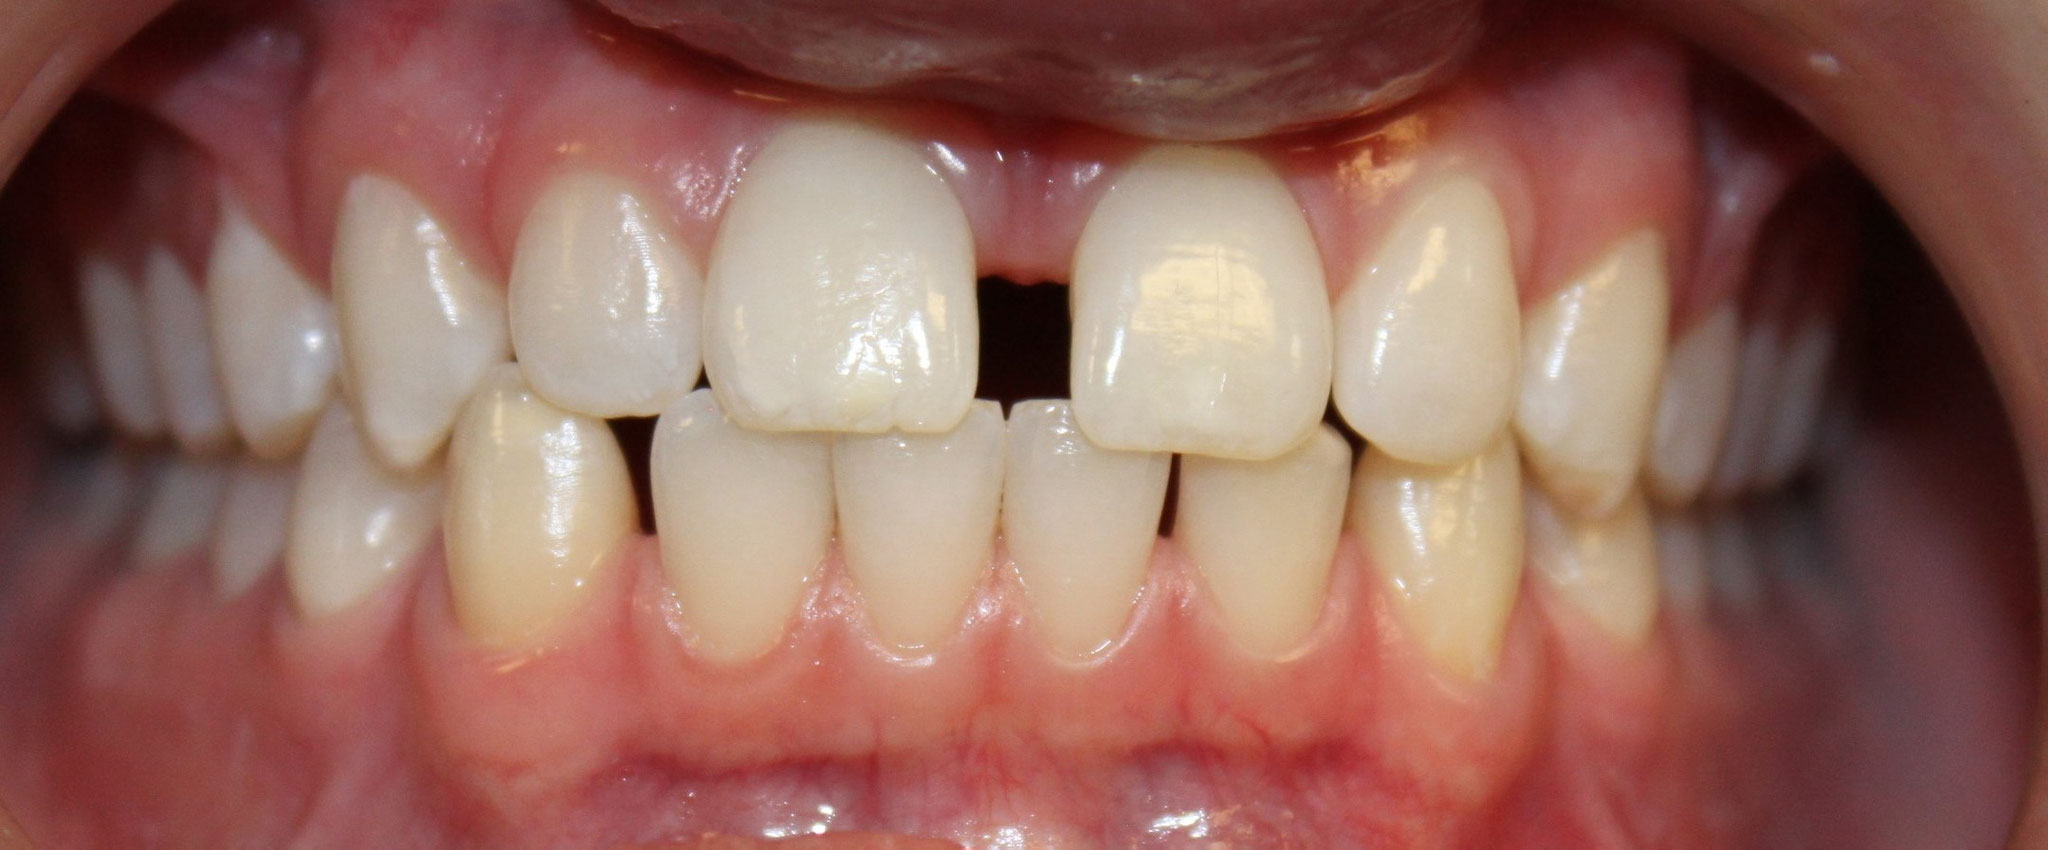 BEFORE | Invisalign treatment patient had severe gapping